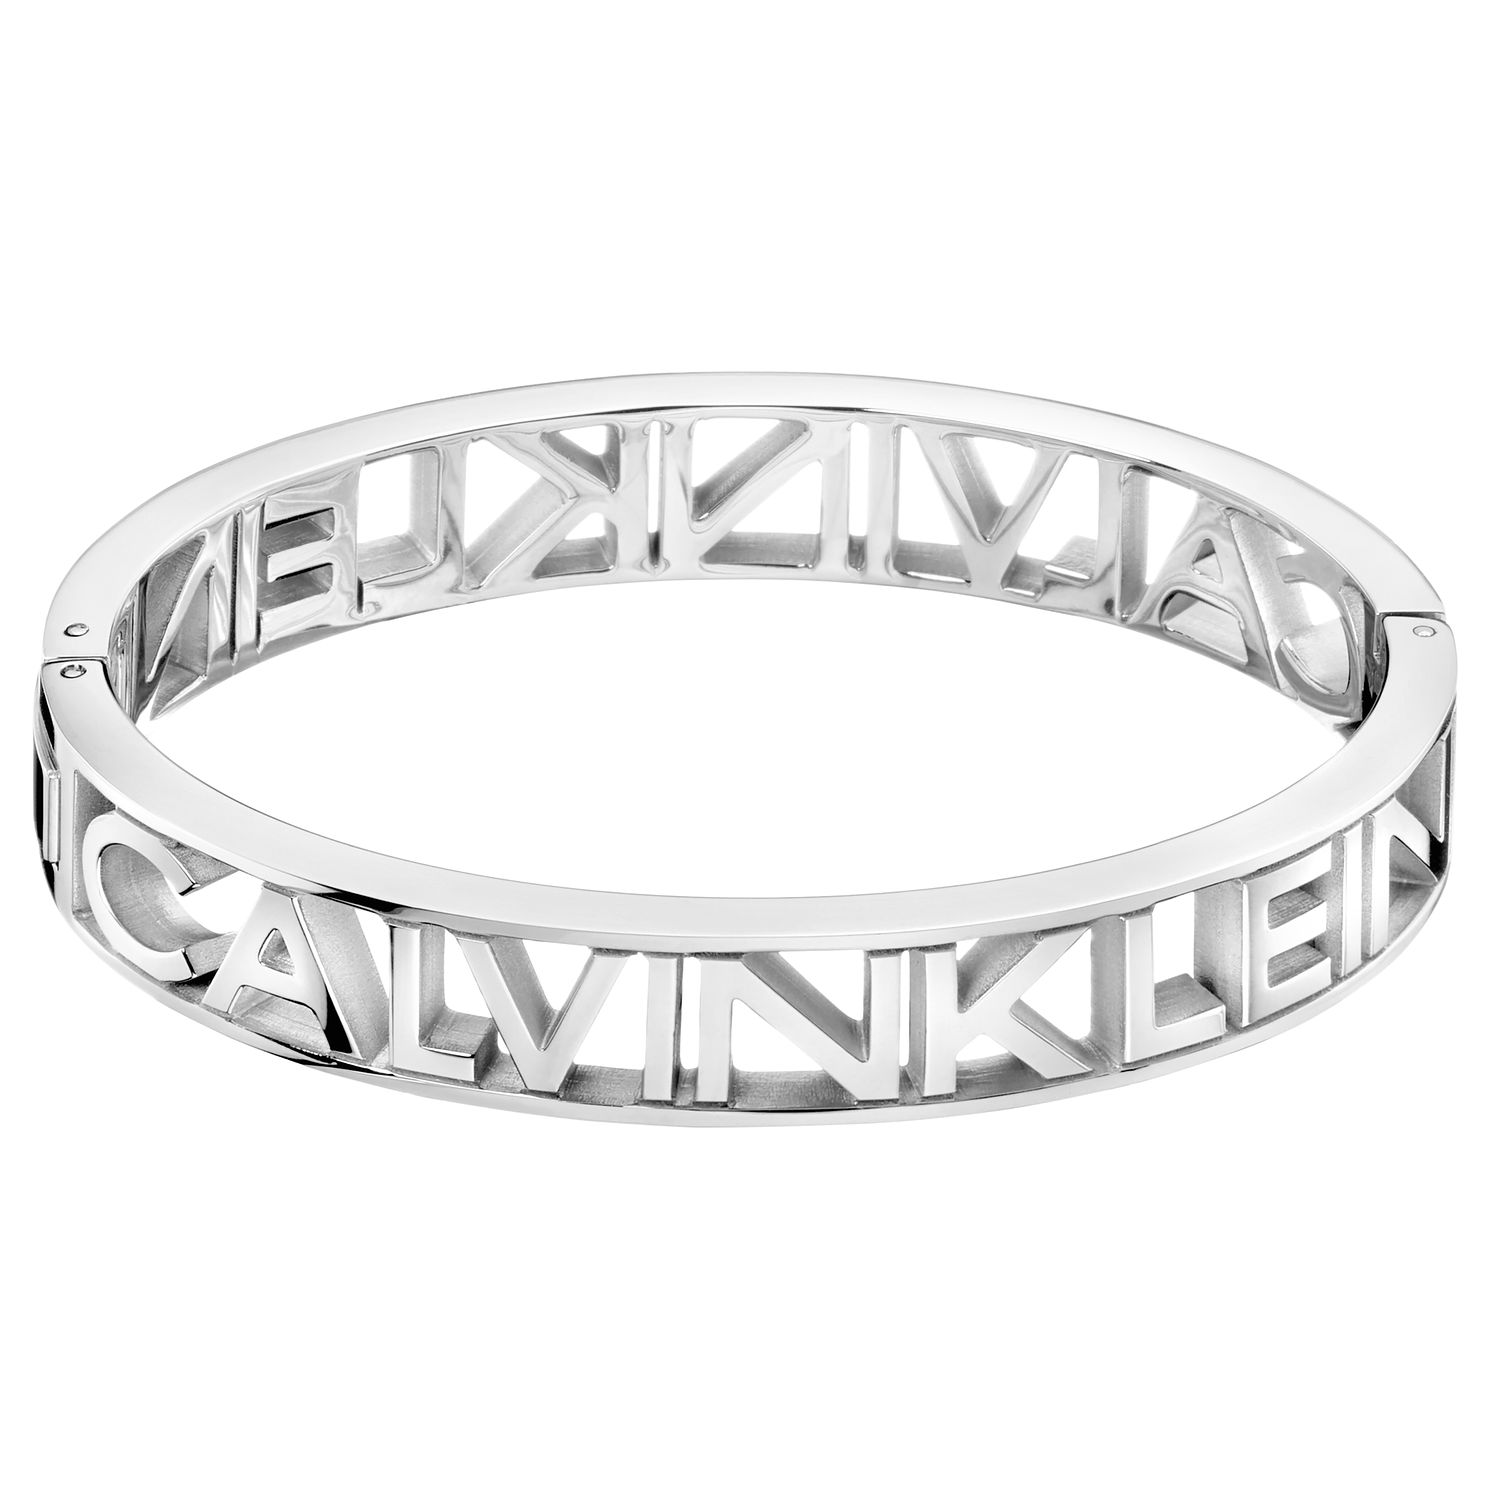 Calvin Klein Mania Stainless Steel Closed Bangle Bracelet - Product number 5524865